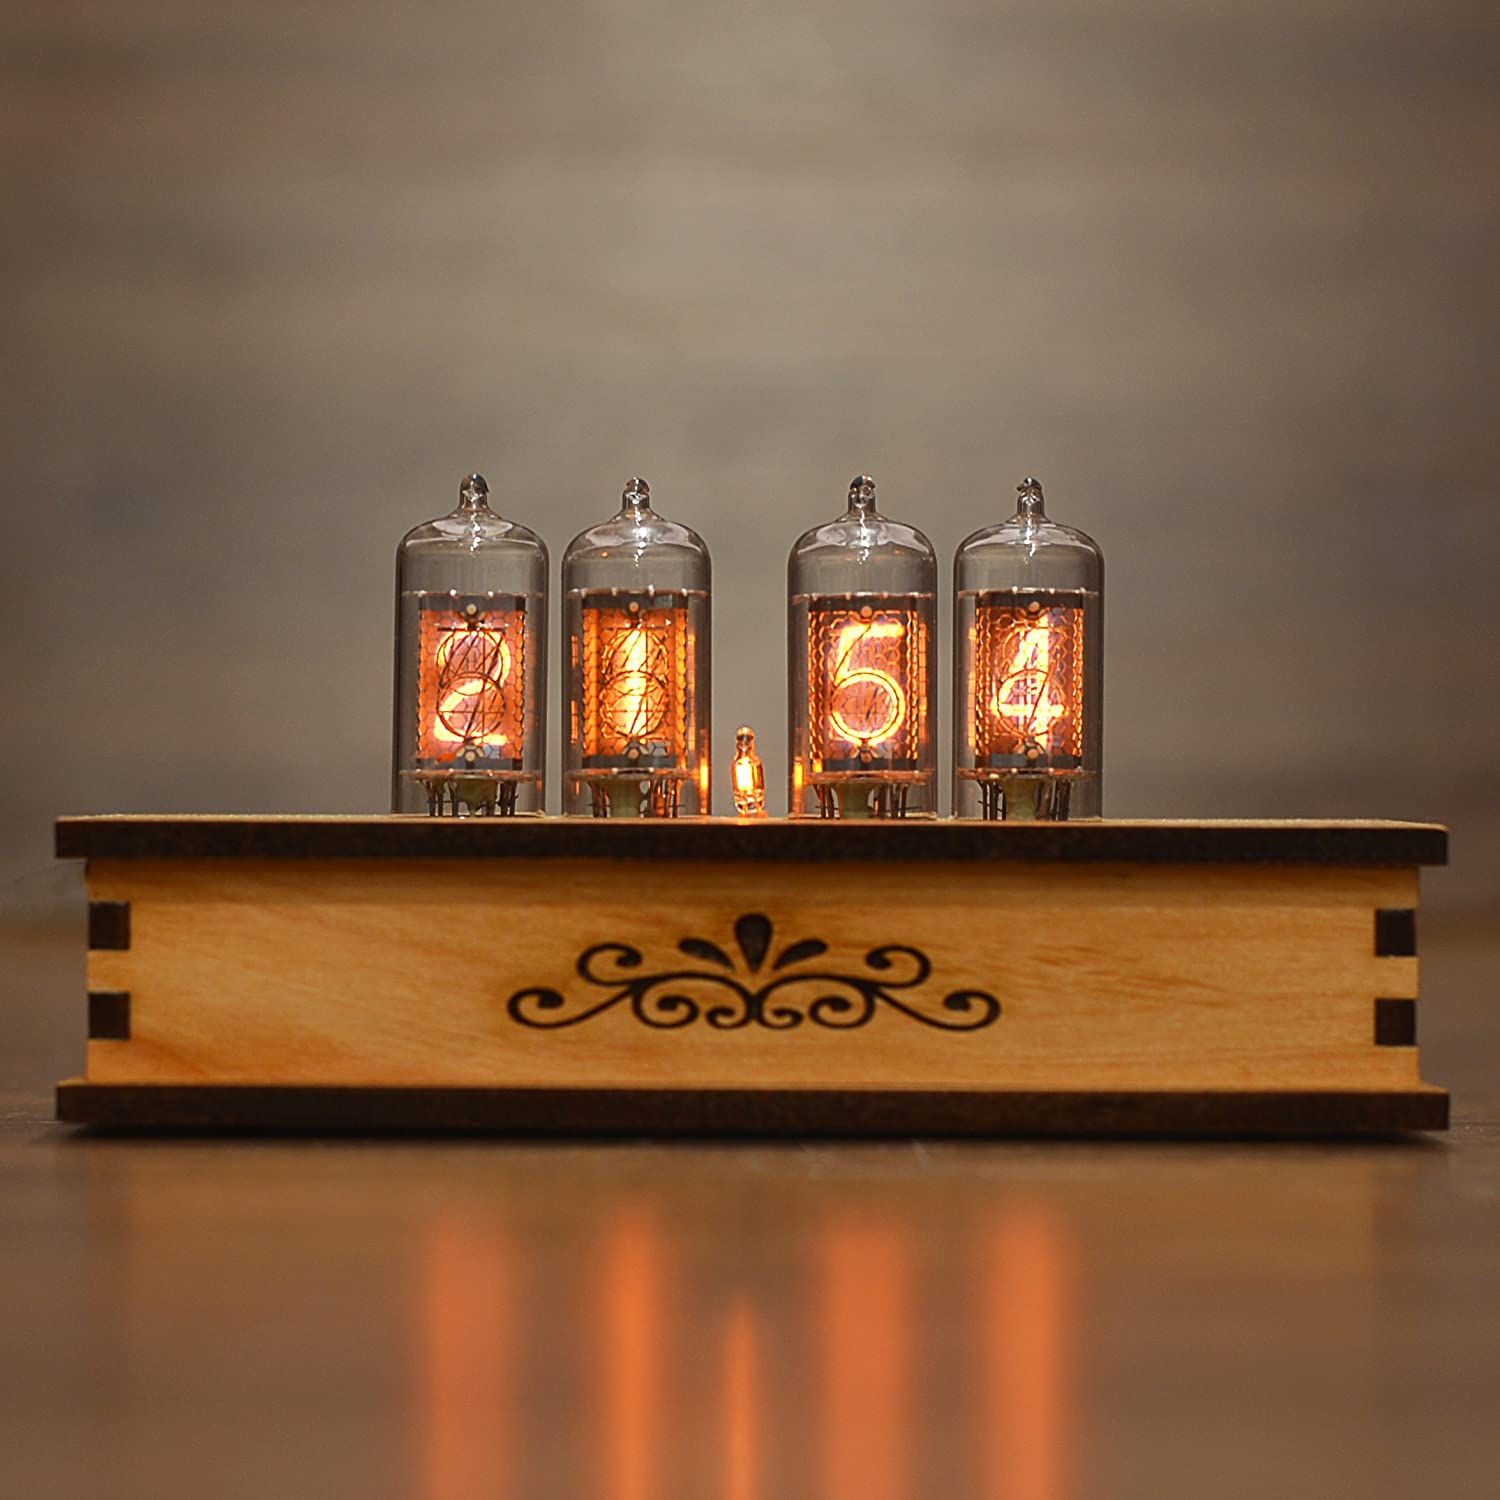 Nixie Tube Clock 4x Z573m Nixie Tubes from Germany Vintage Retro Desk Table Clock Fully Assembled and Tested Wooden Alder Case